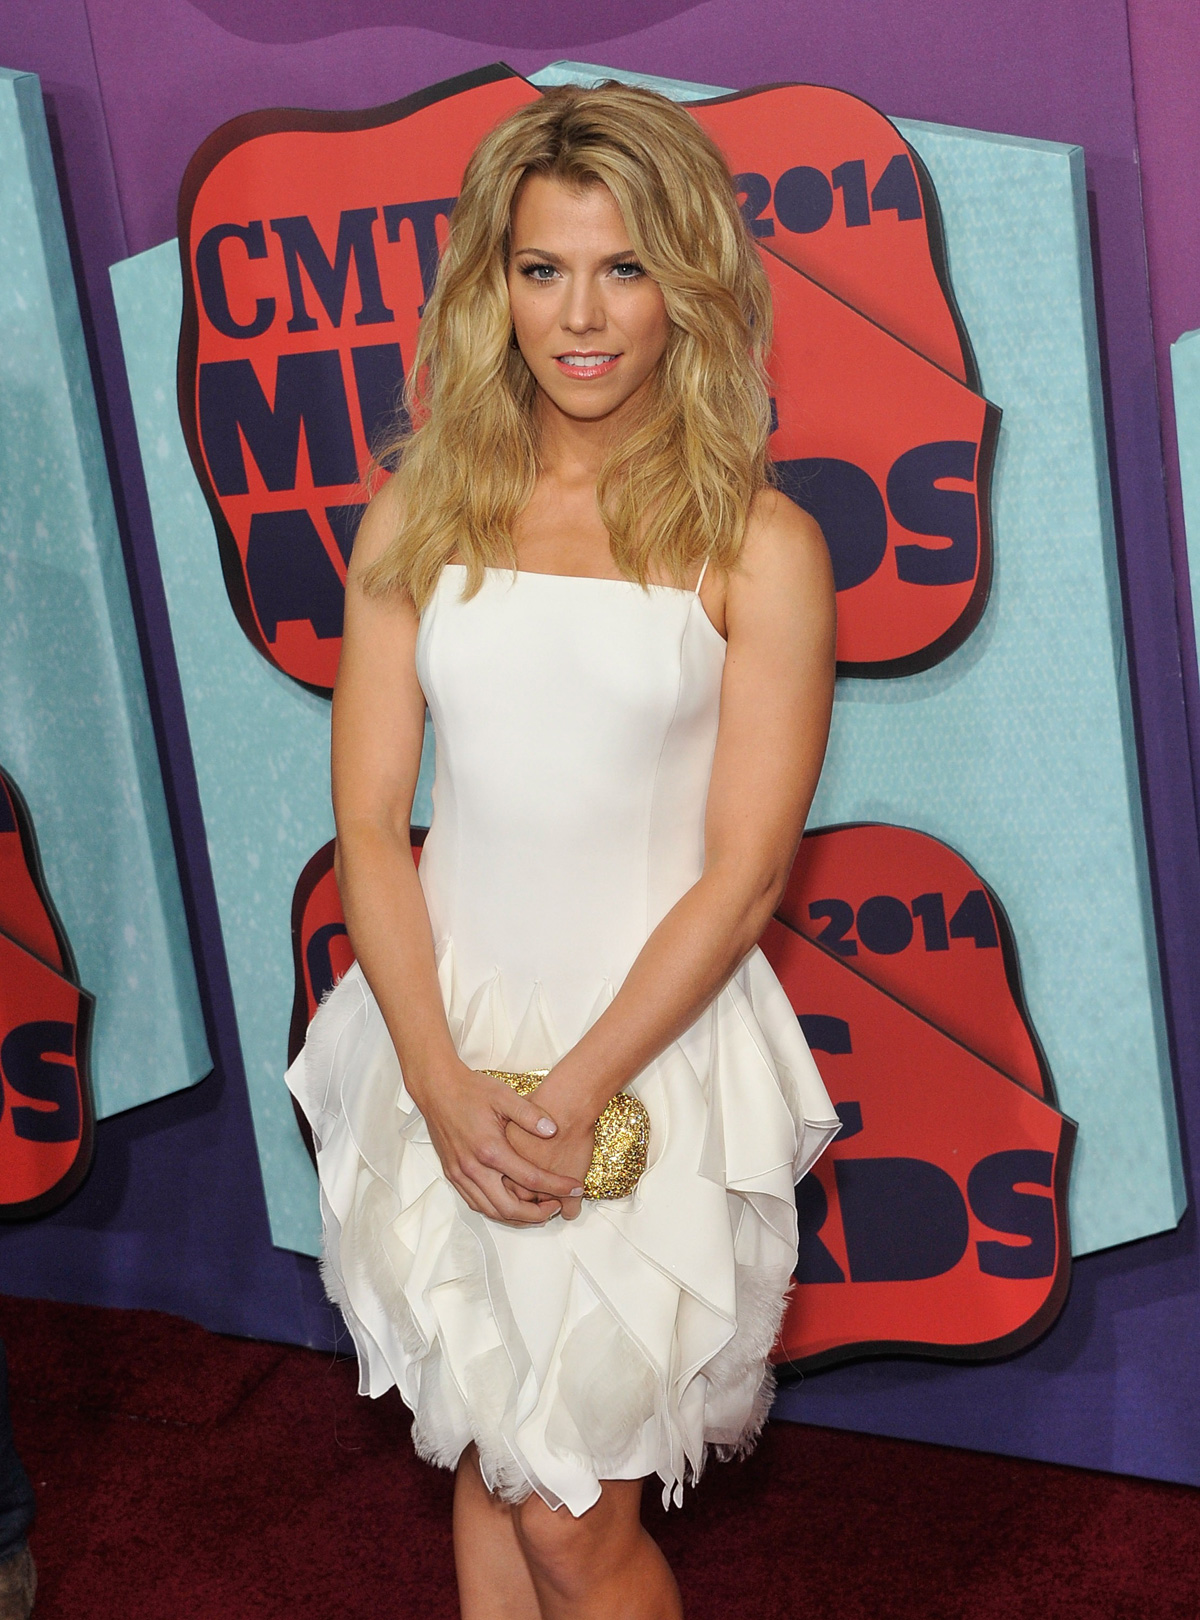 Kimberly Perryat the the 2014 CMT Music Awards